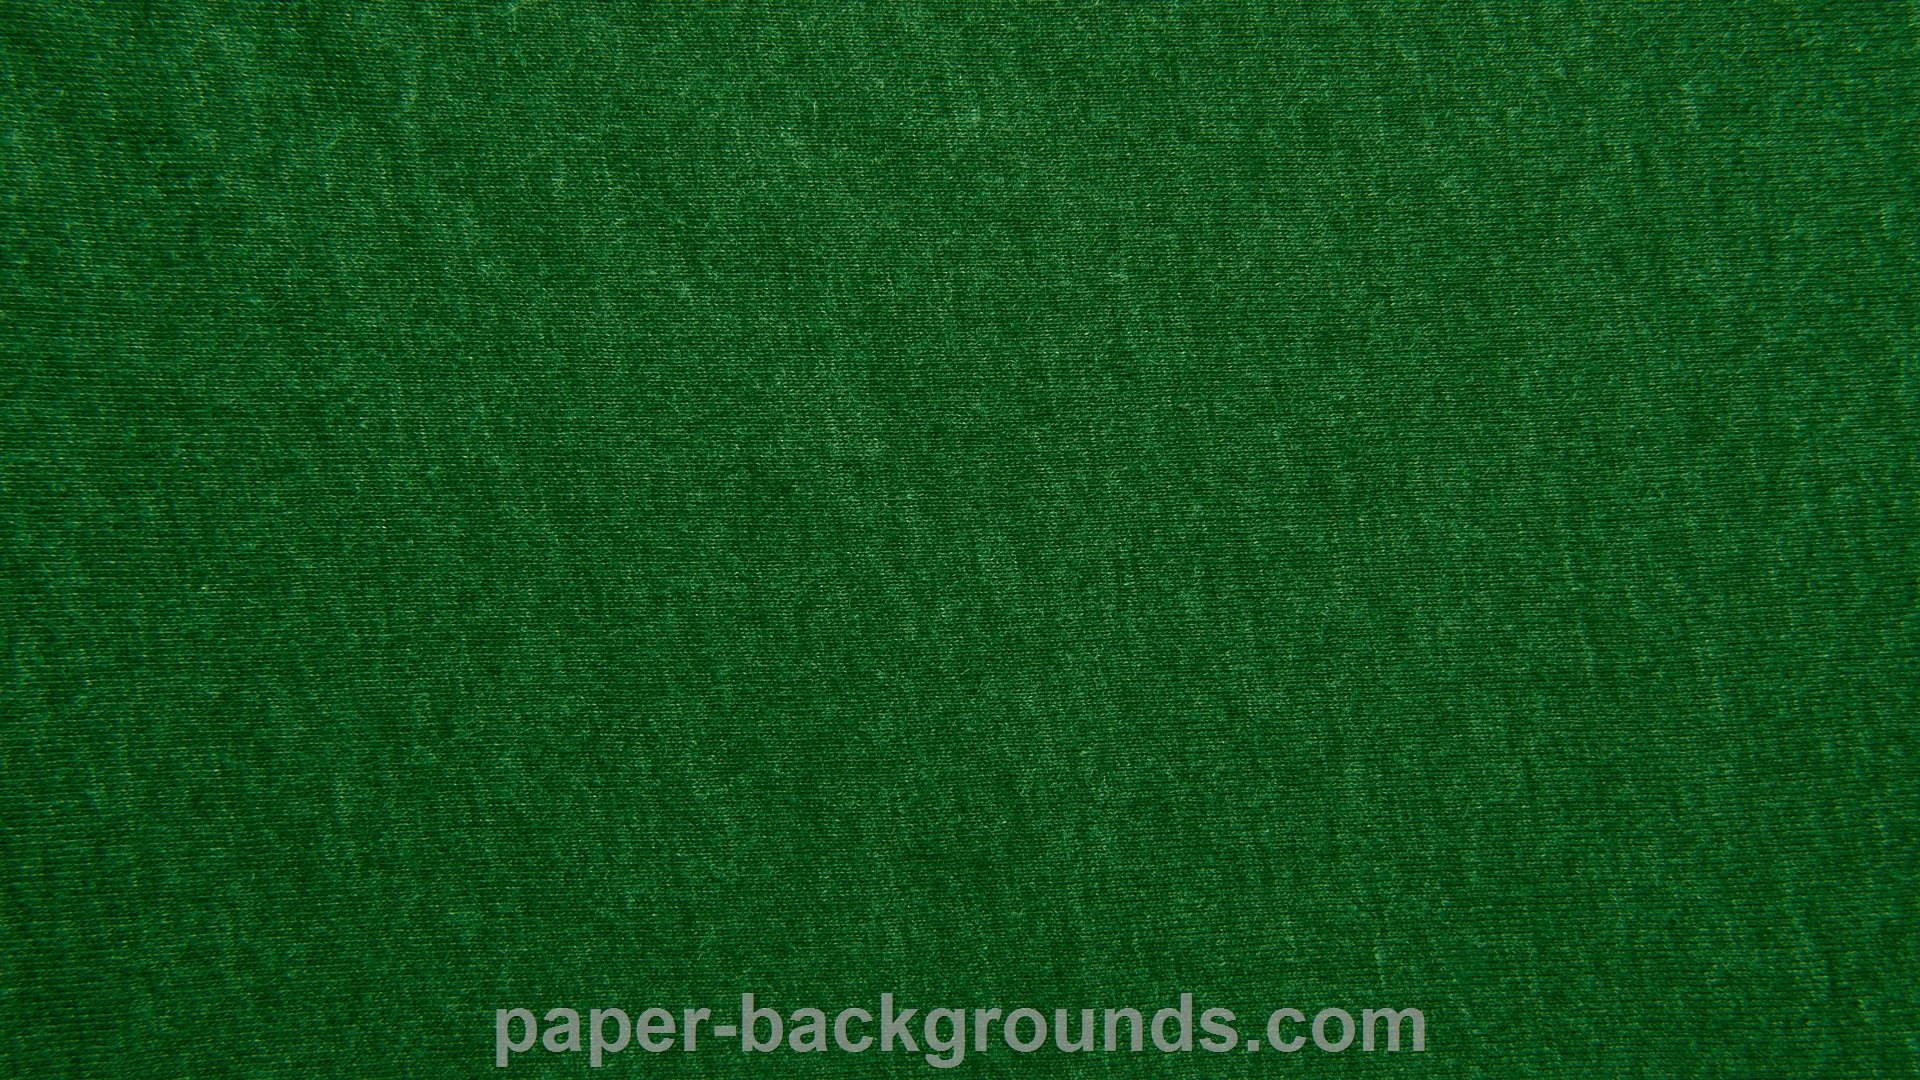 Paper Backgrounds green fabric texture background hd 1920x1080